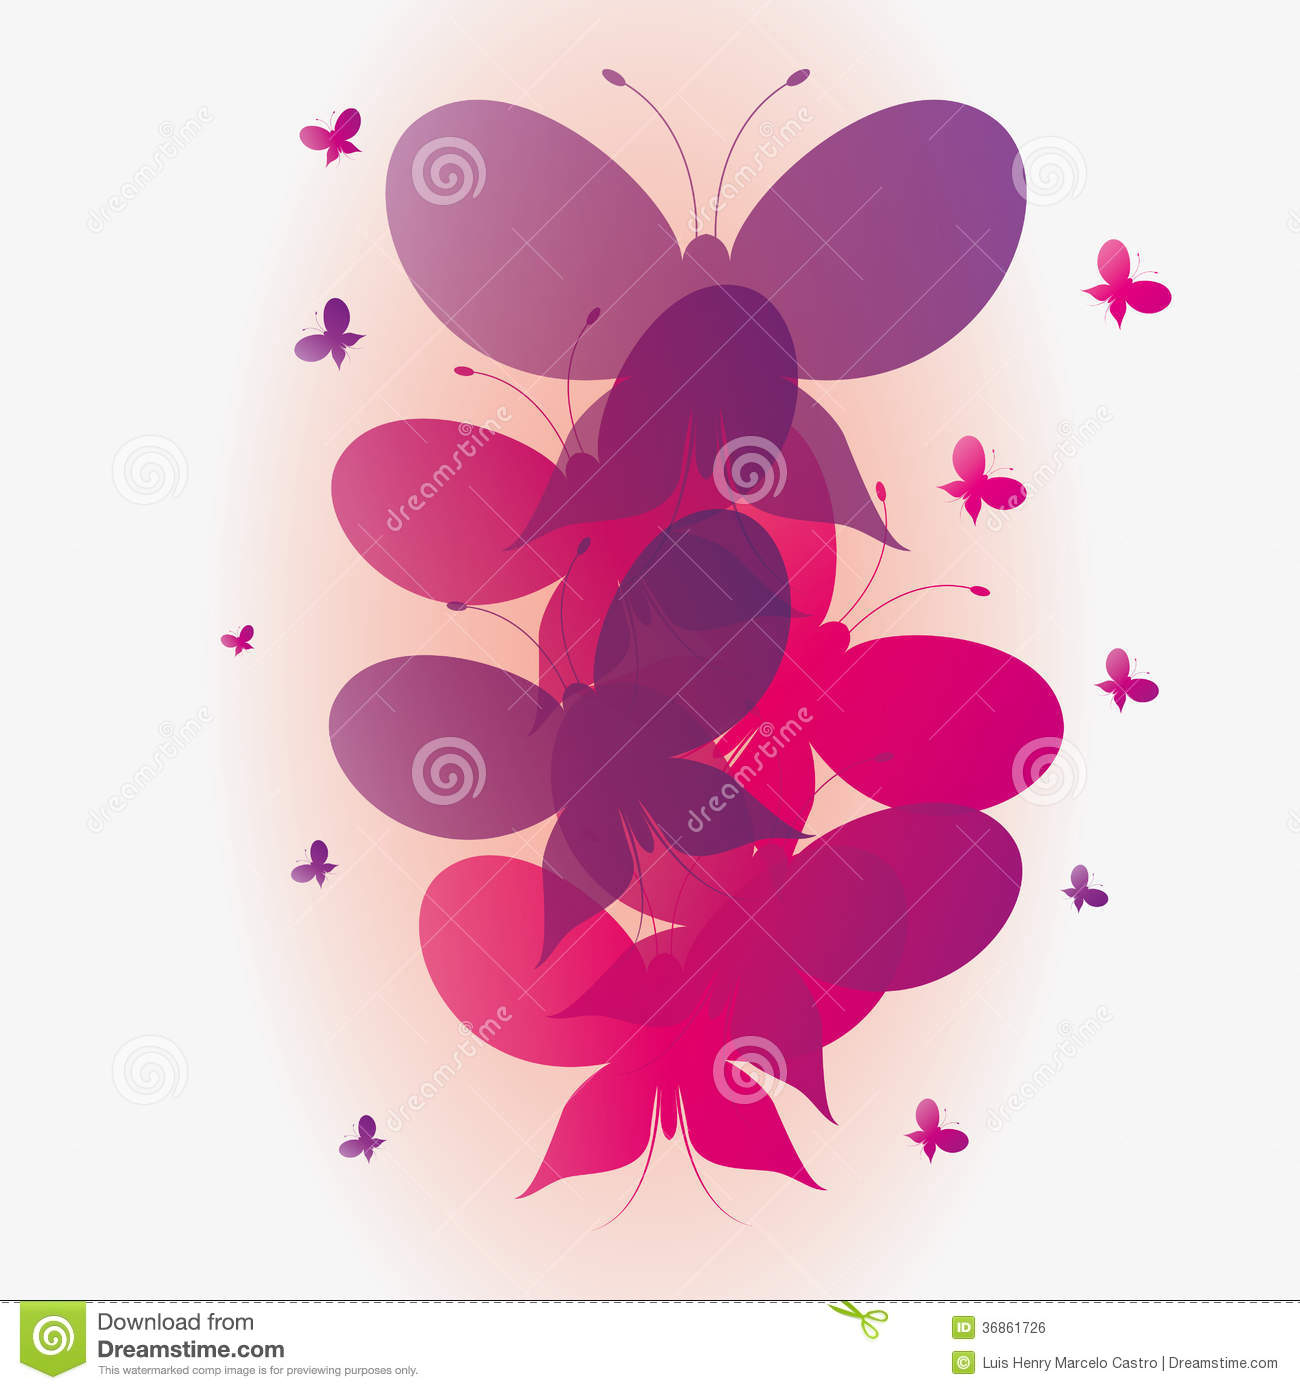 Pink butterfly vector background hd wallpapers pink butterfly vector - Vector Abstract Pink And Purple Butterflies Background Royalty Free Stock Image